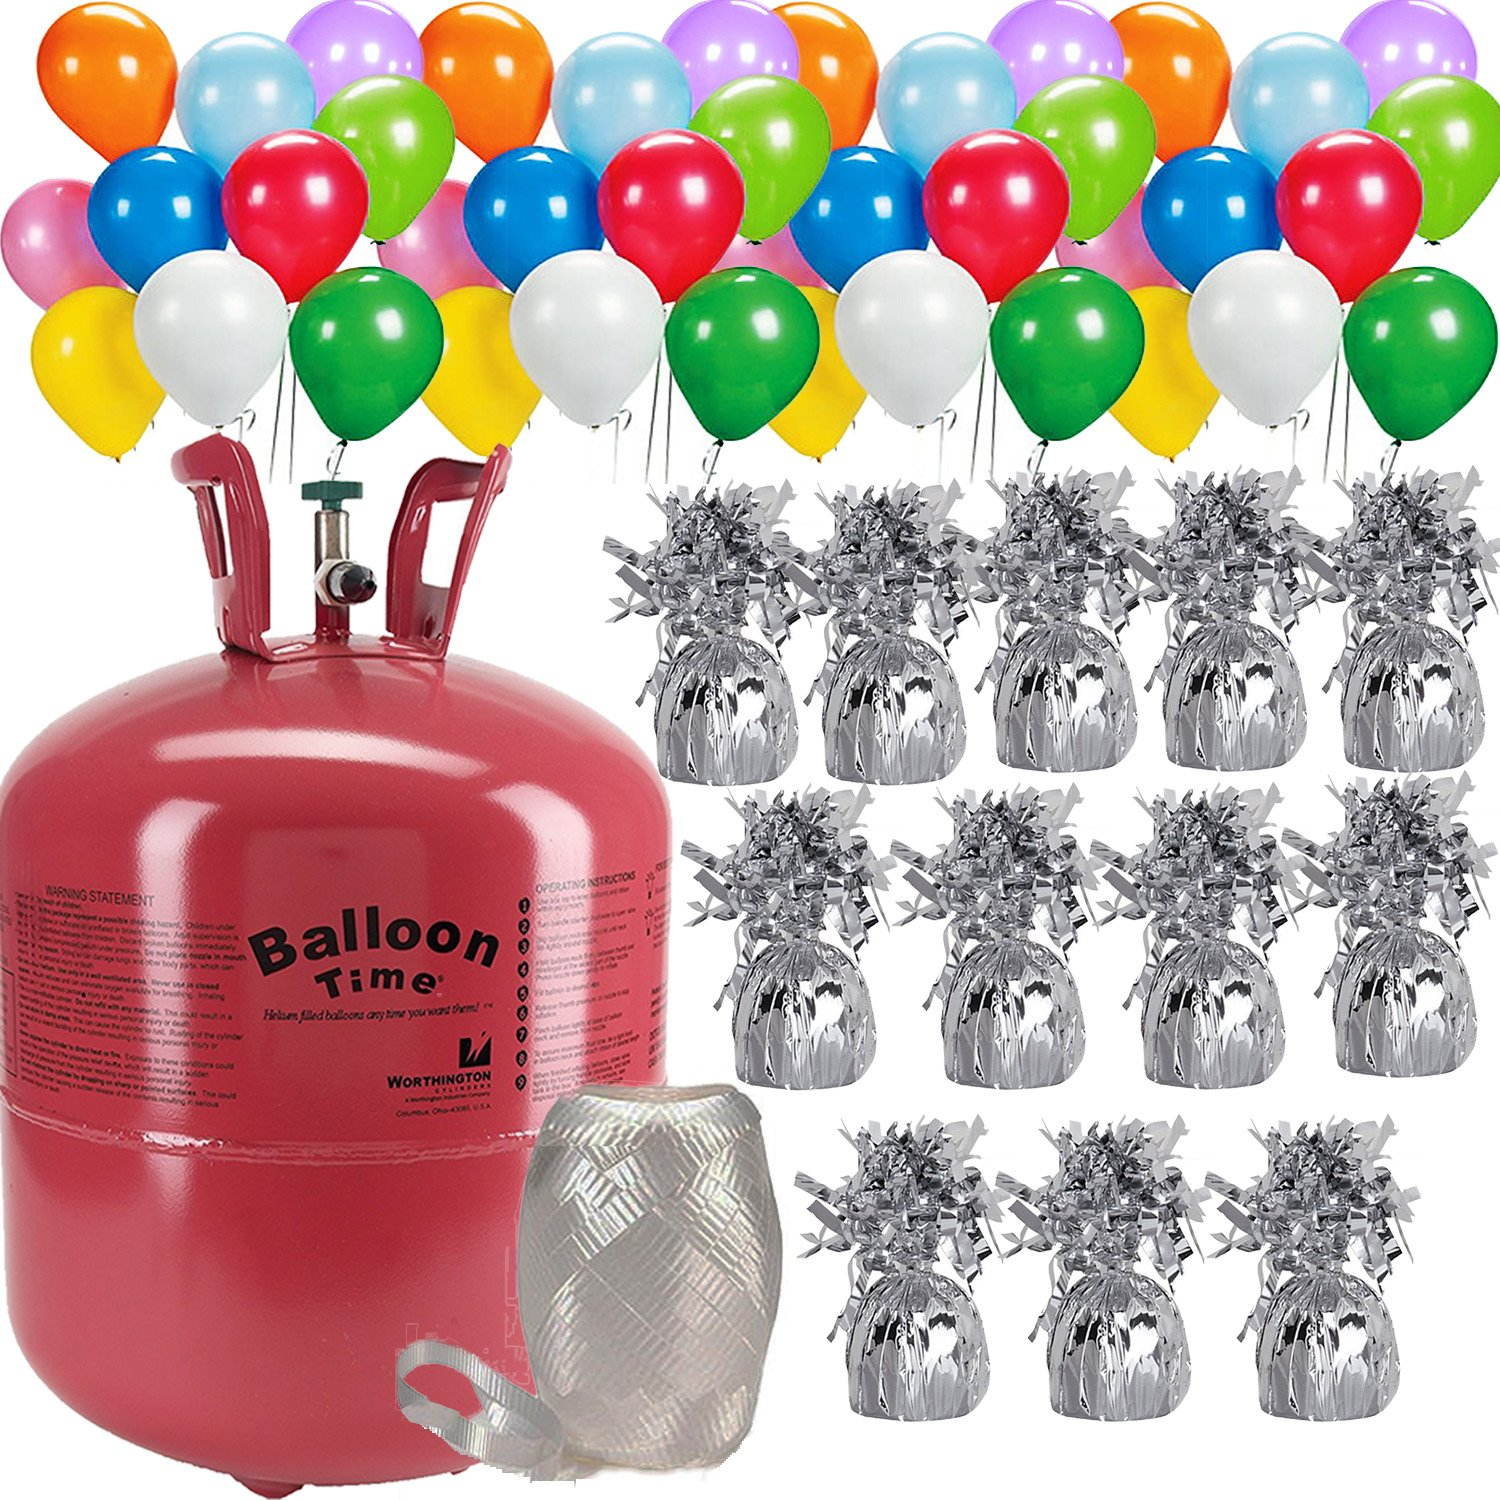 Helium Tank + 50 Multi Color balloons + 12 Balloon Weights, 5.5', 5.7 oz + White Curling Ribbon |14.9 Cubic Feet Helium, Enough for 50 9' Balloons 5.5 Enough for 50 9 Balloons HeroFiber